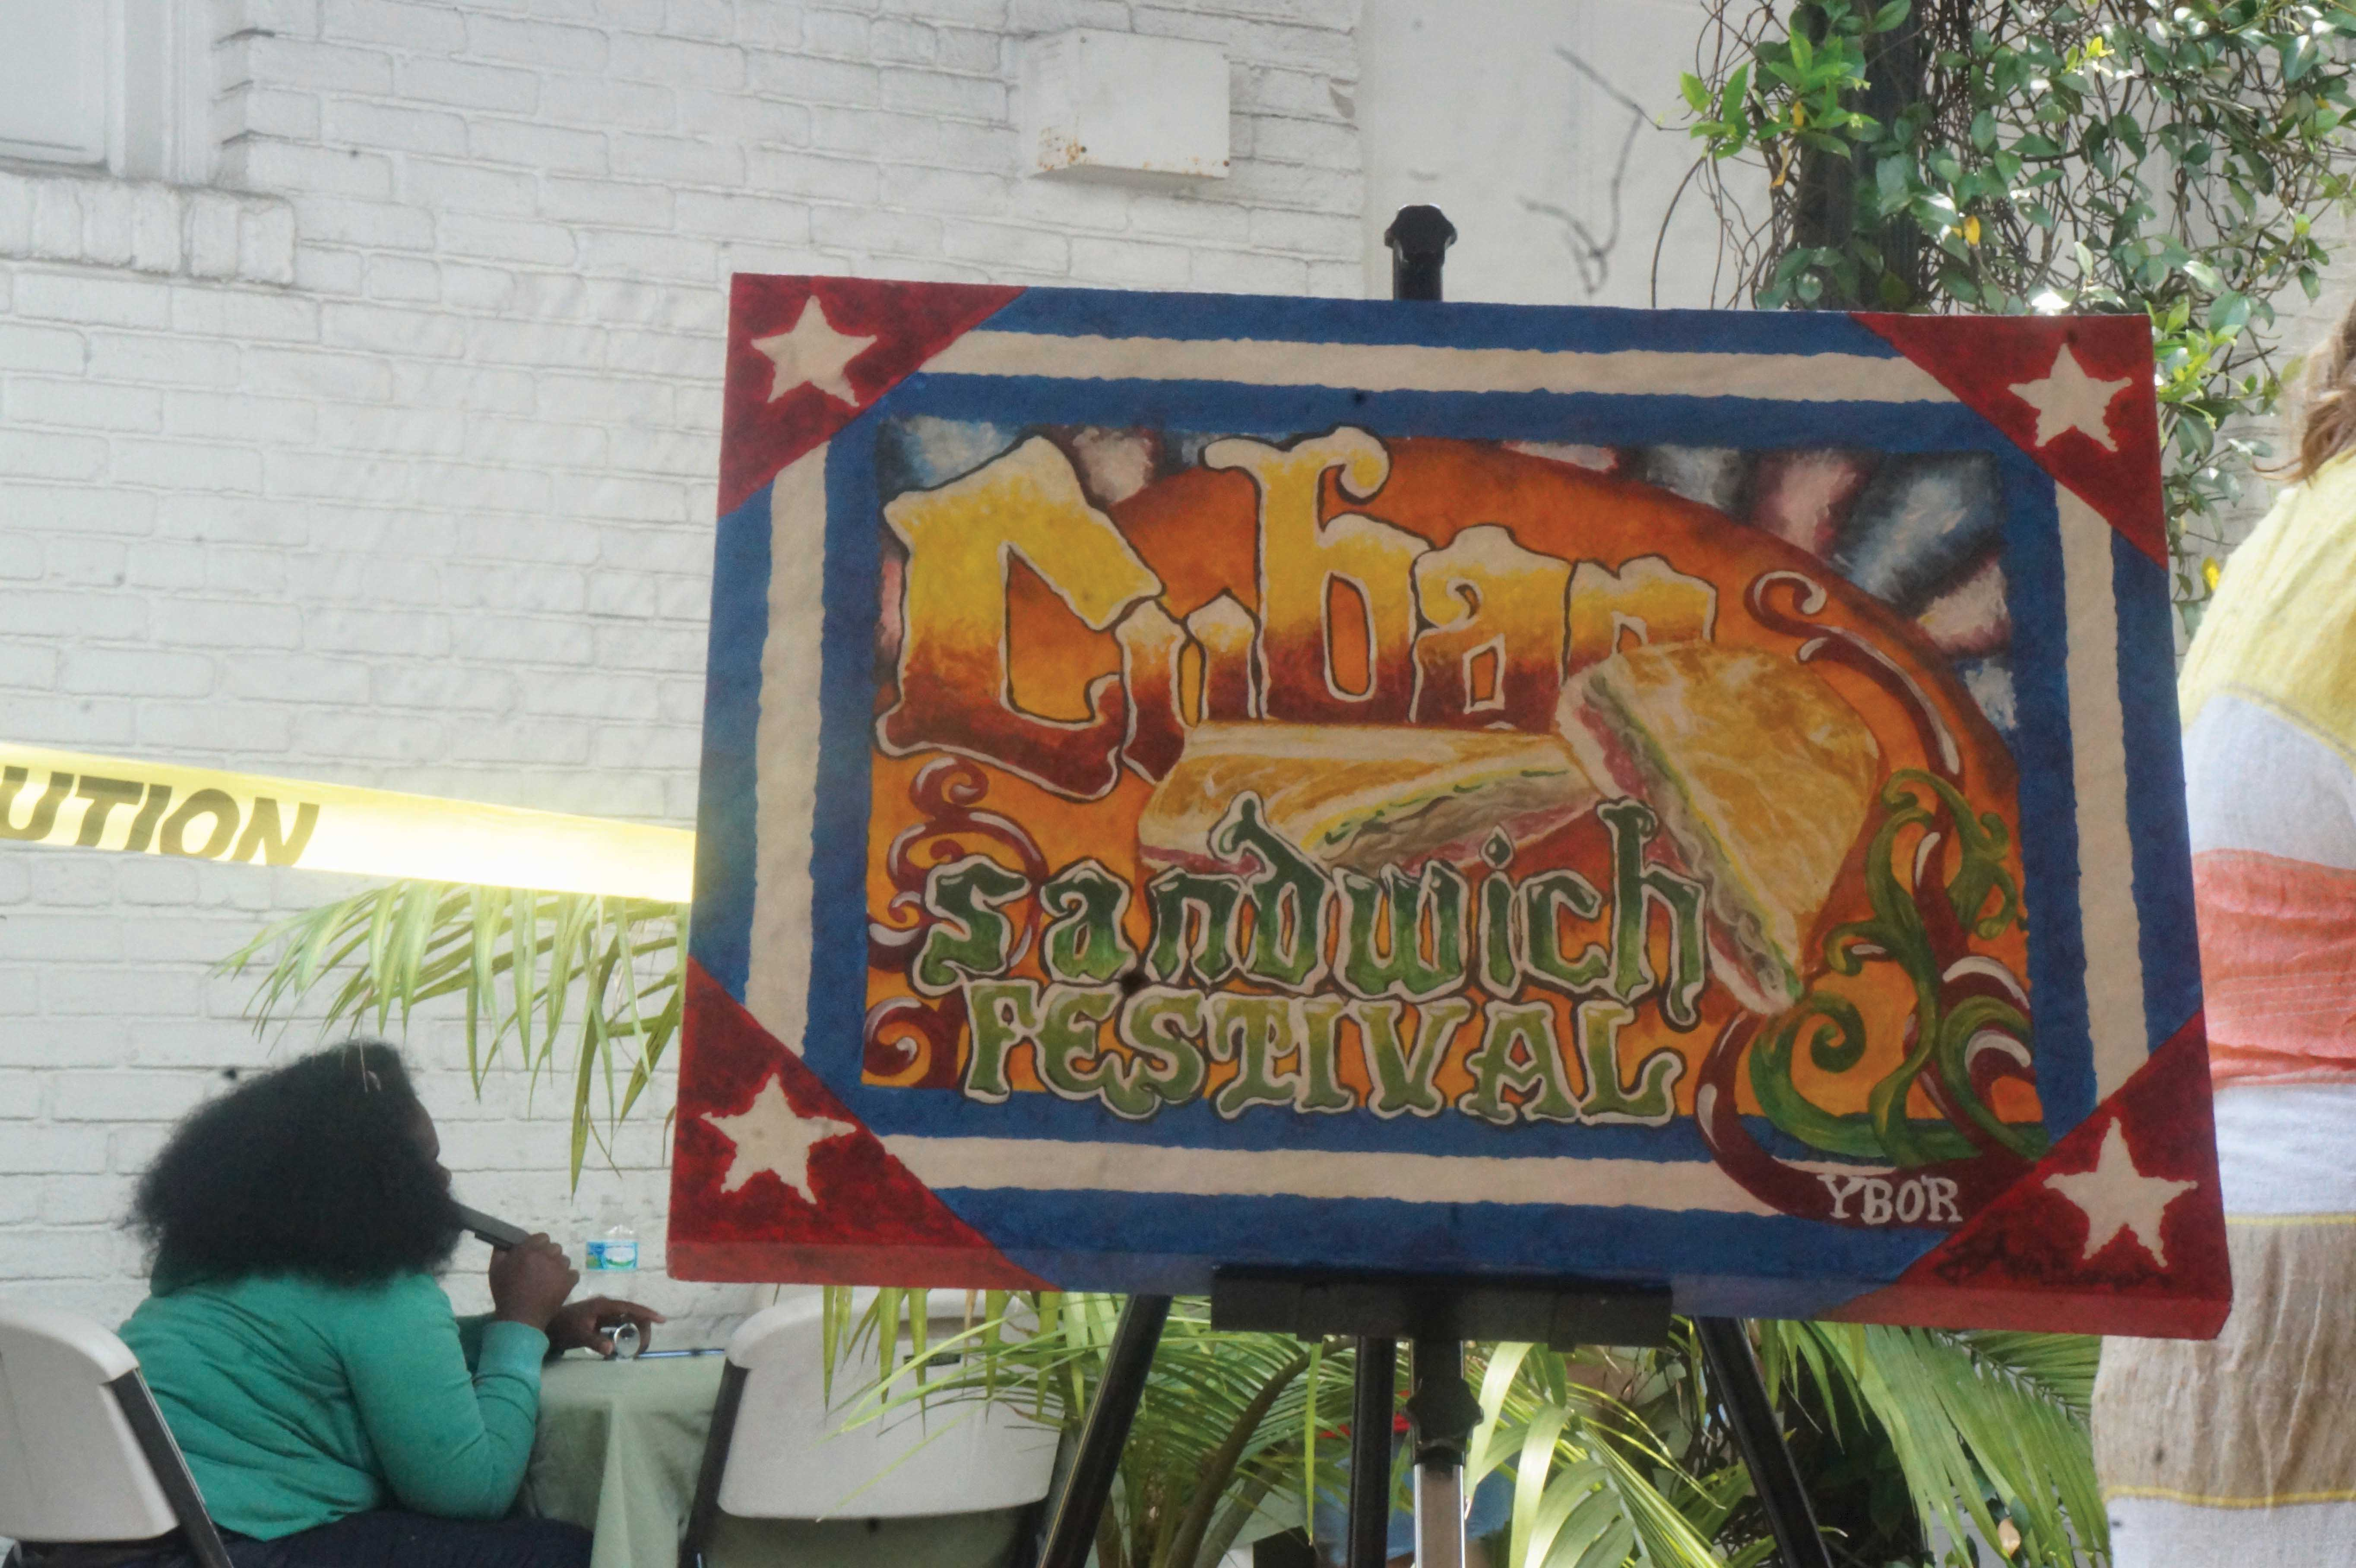 The Cuban Sandwich Festival brought in competition from all over Florida.